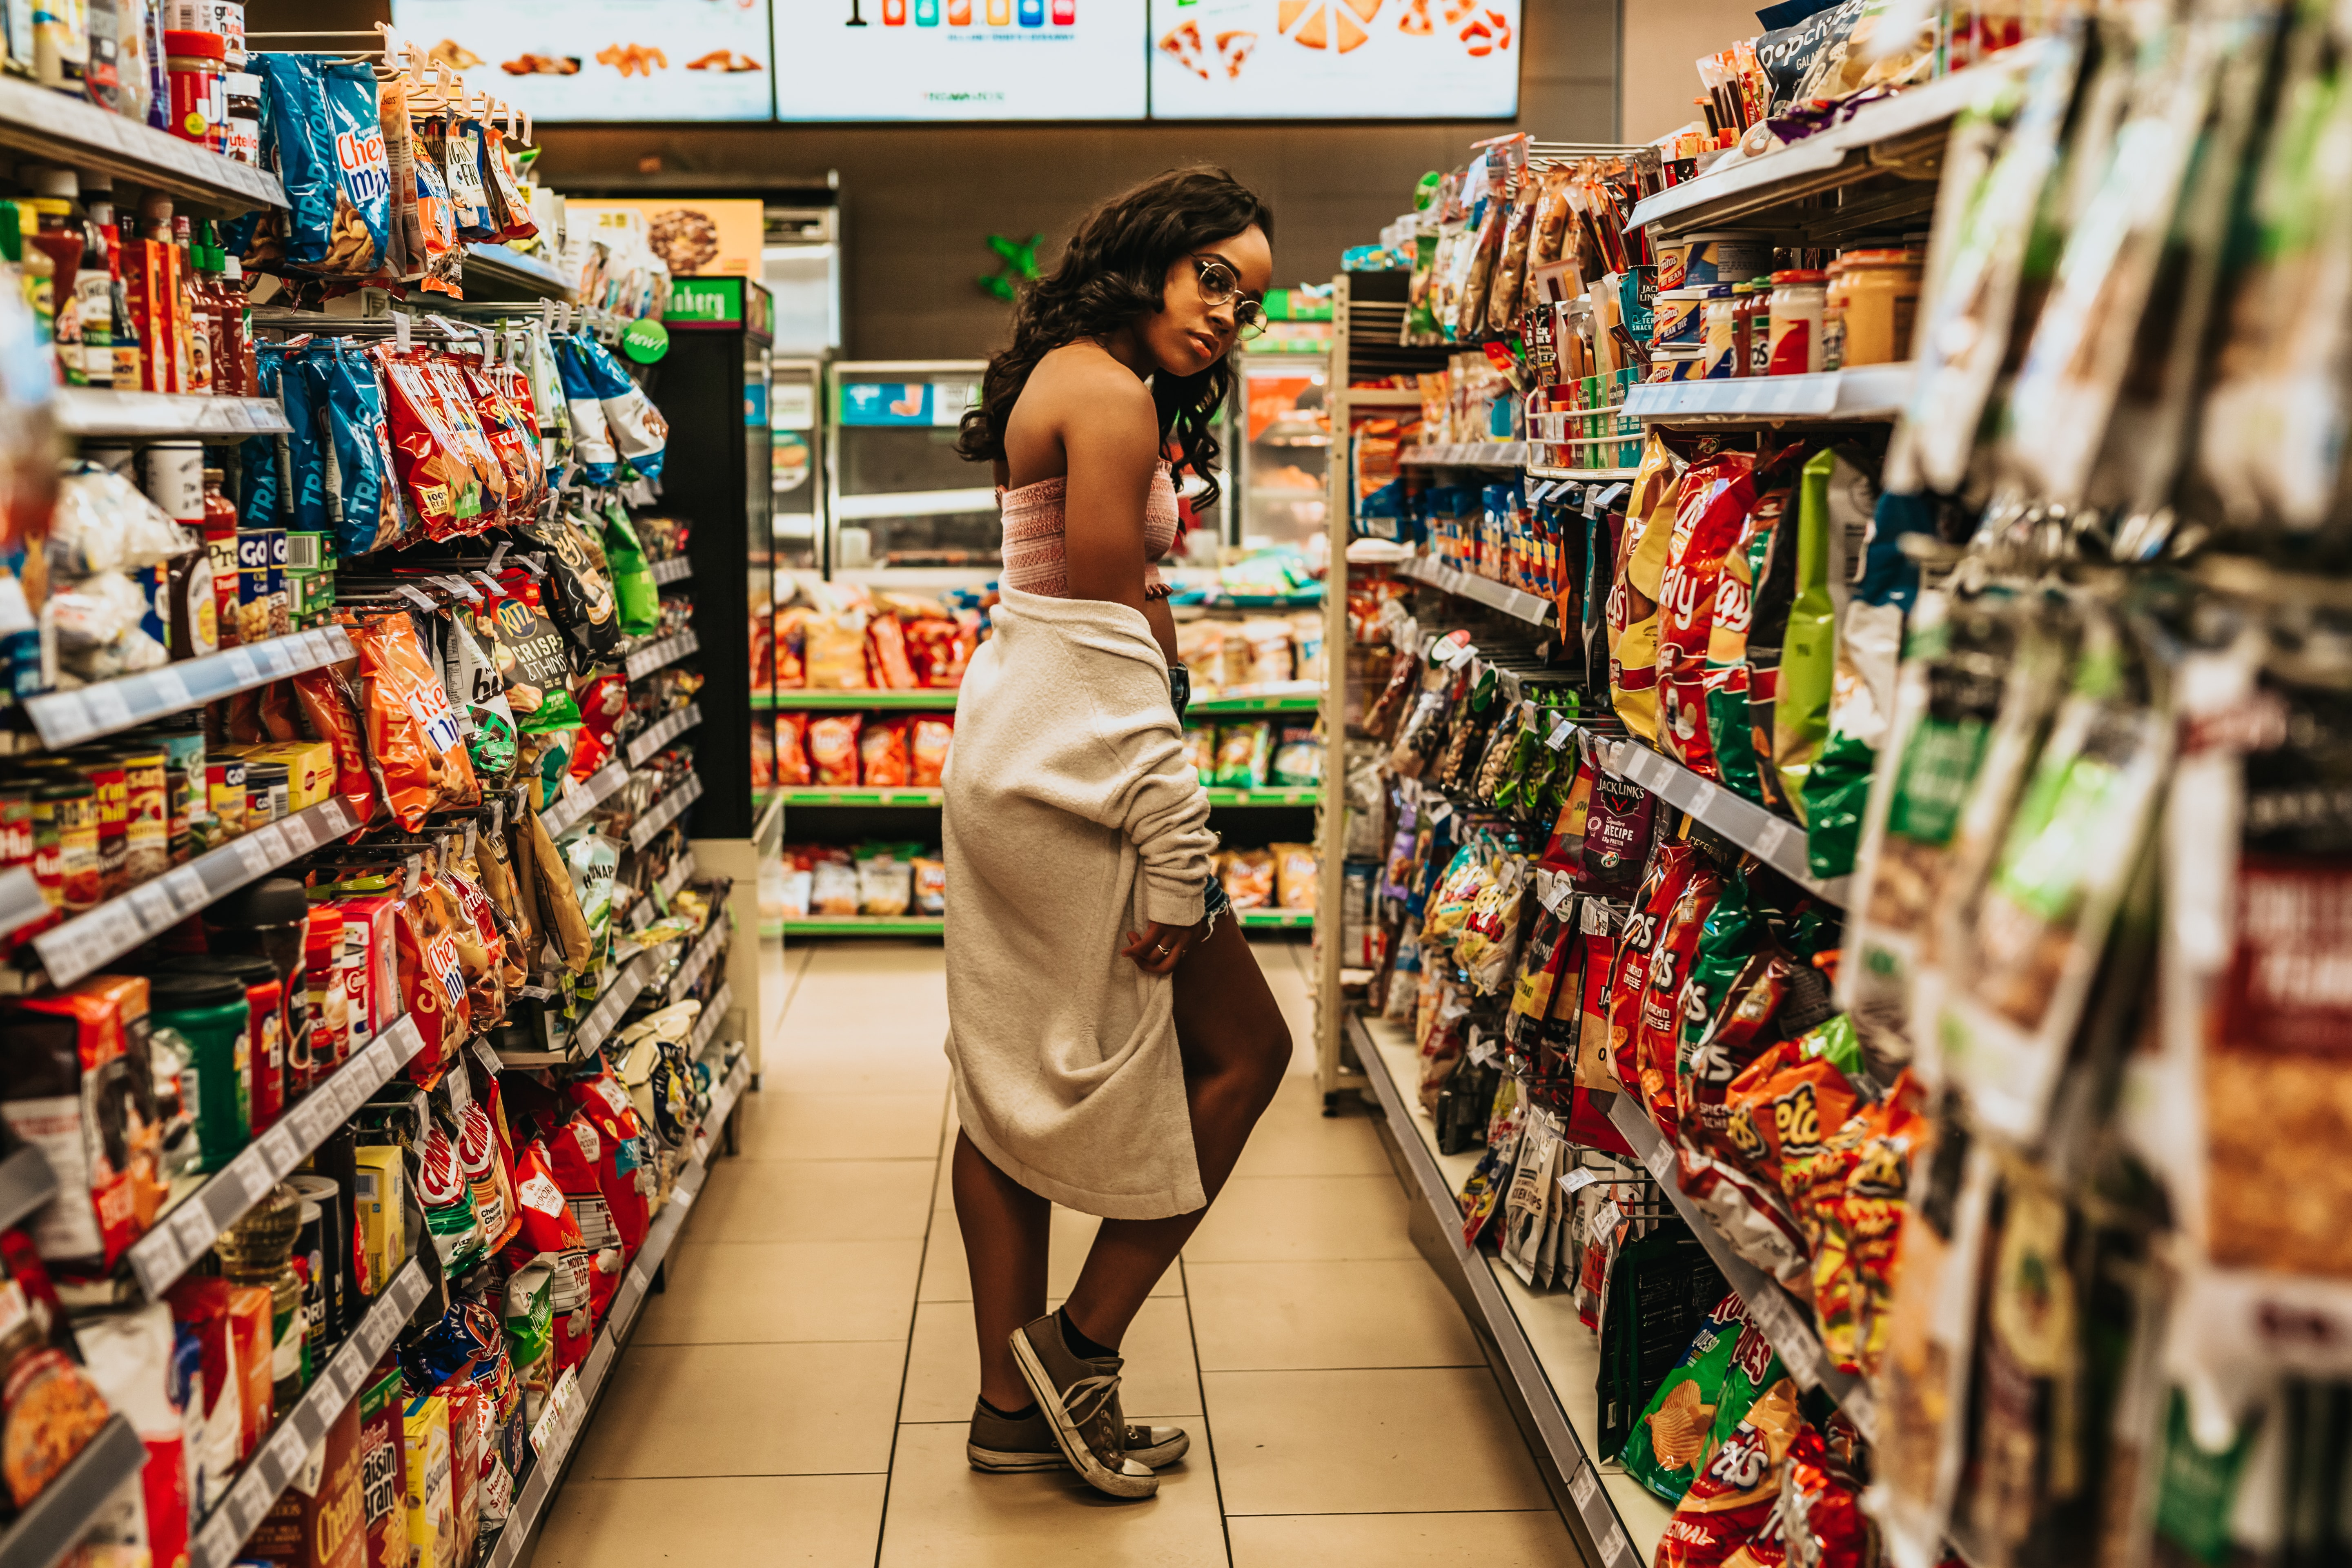 woman posing between store shelves with products in store interior